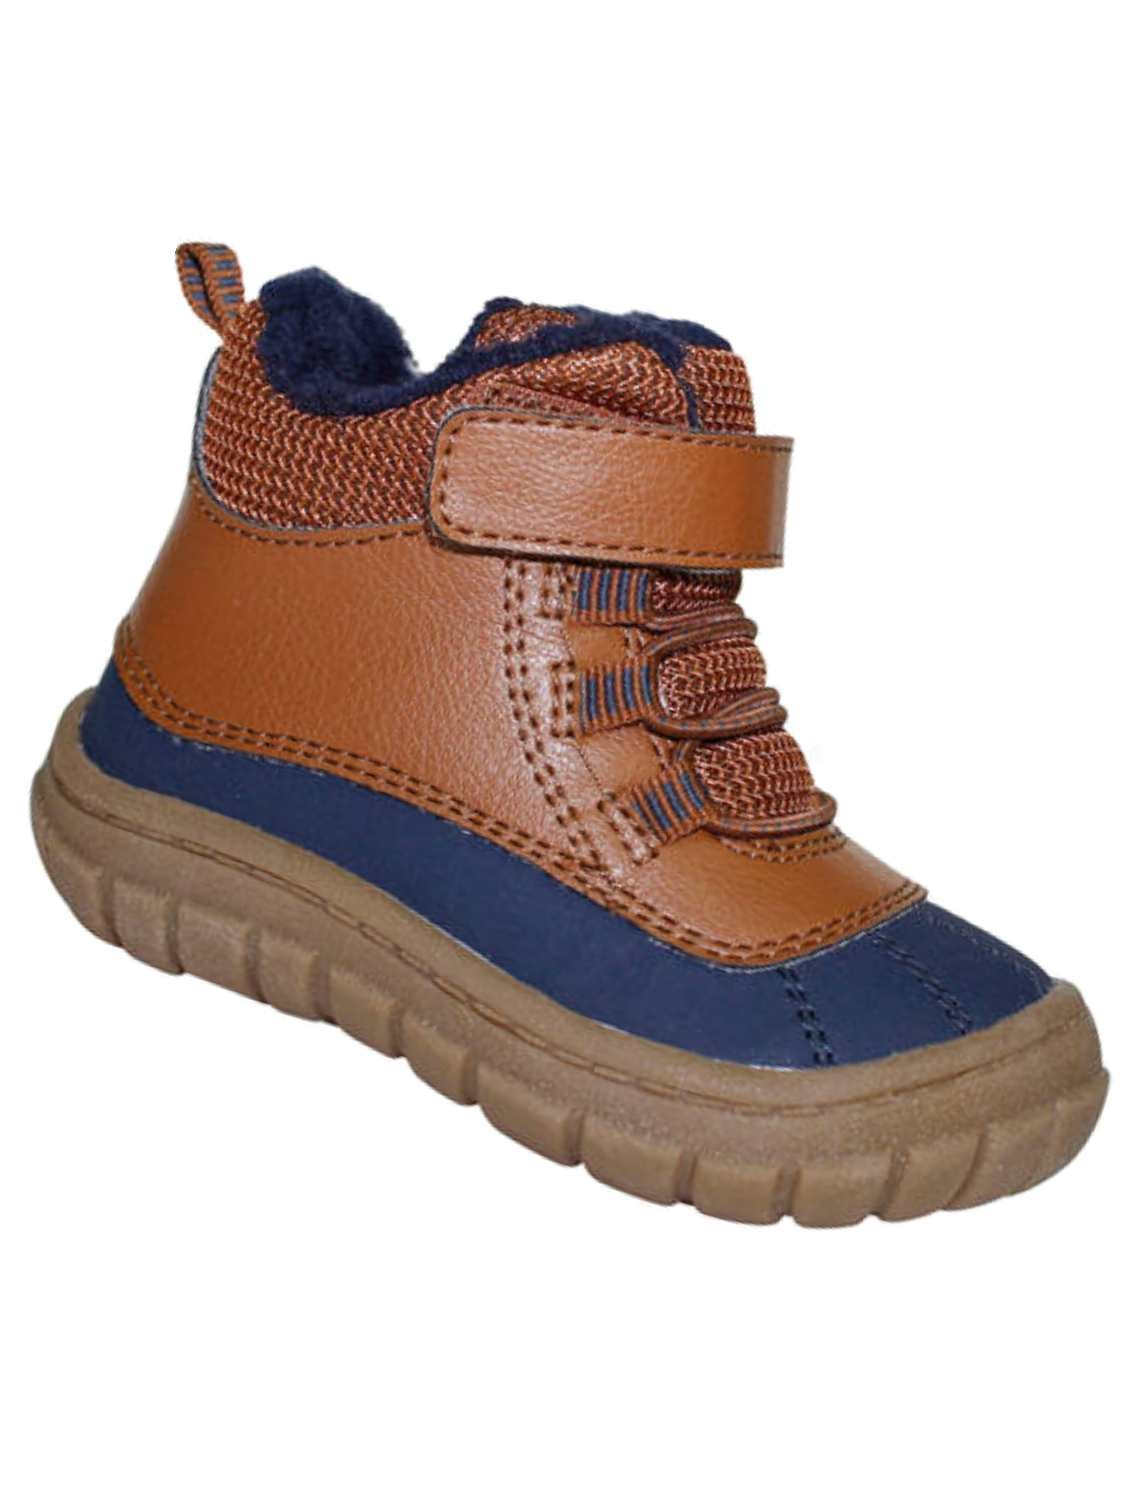 Garanimals Toddler Boys Brown & Blue Rubberized Work & Hiking Boots Shoes 5